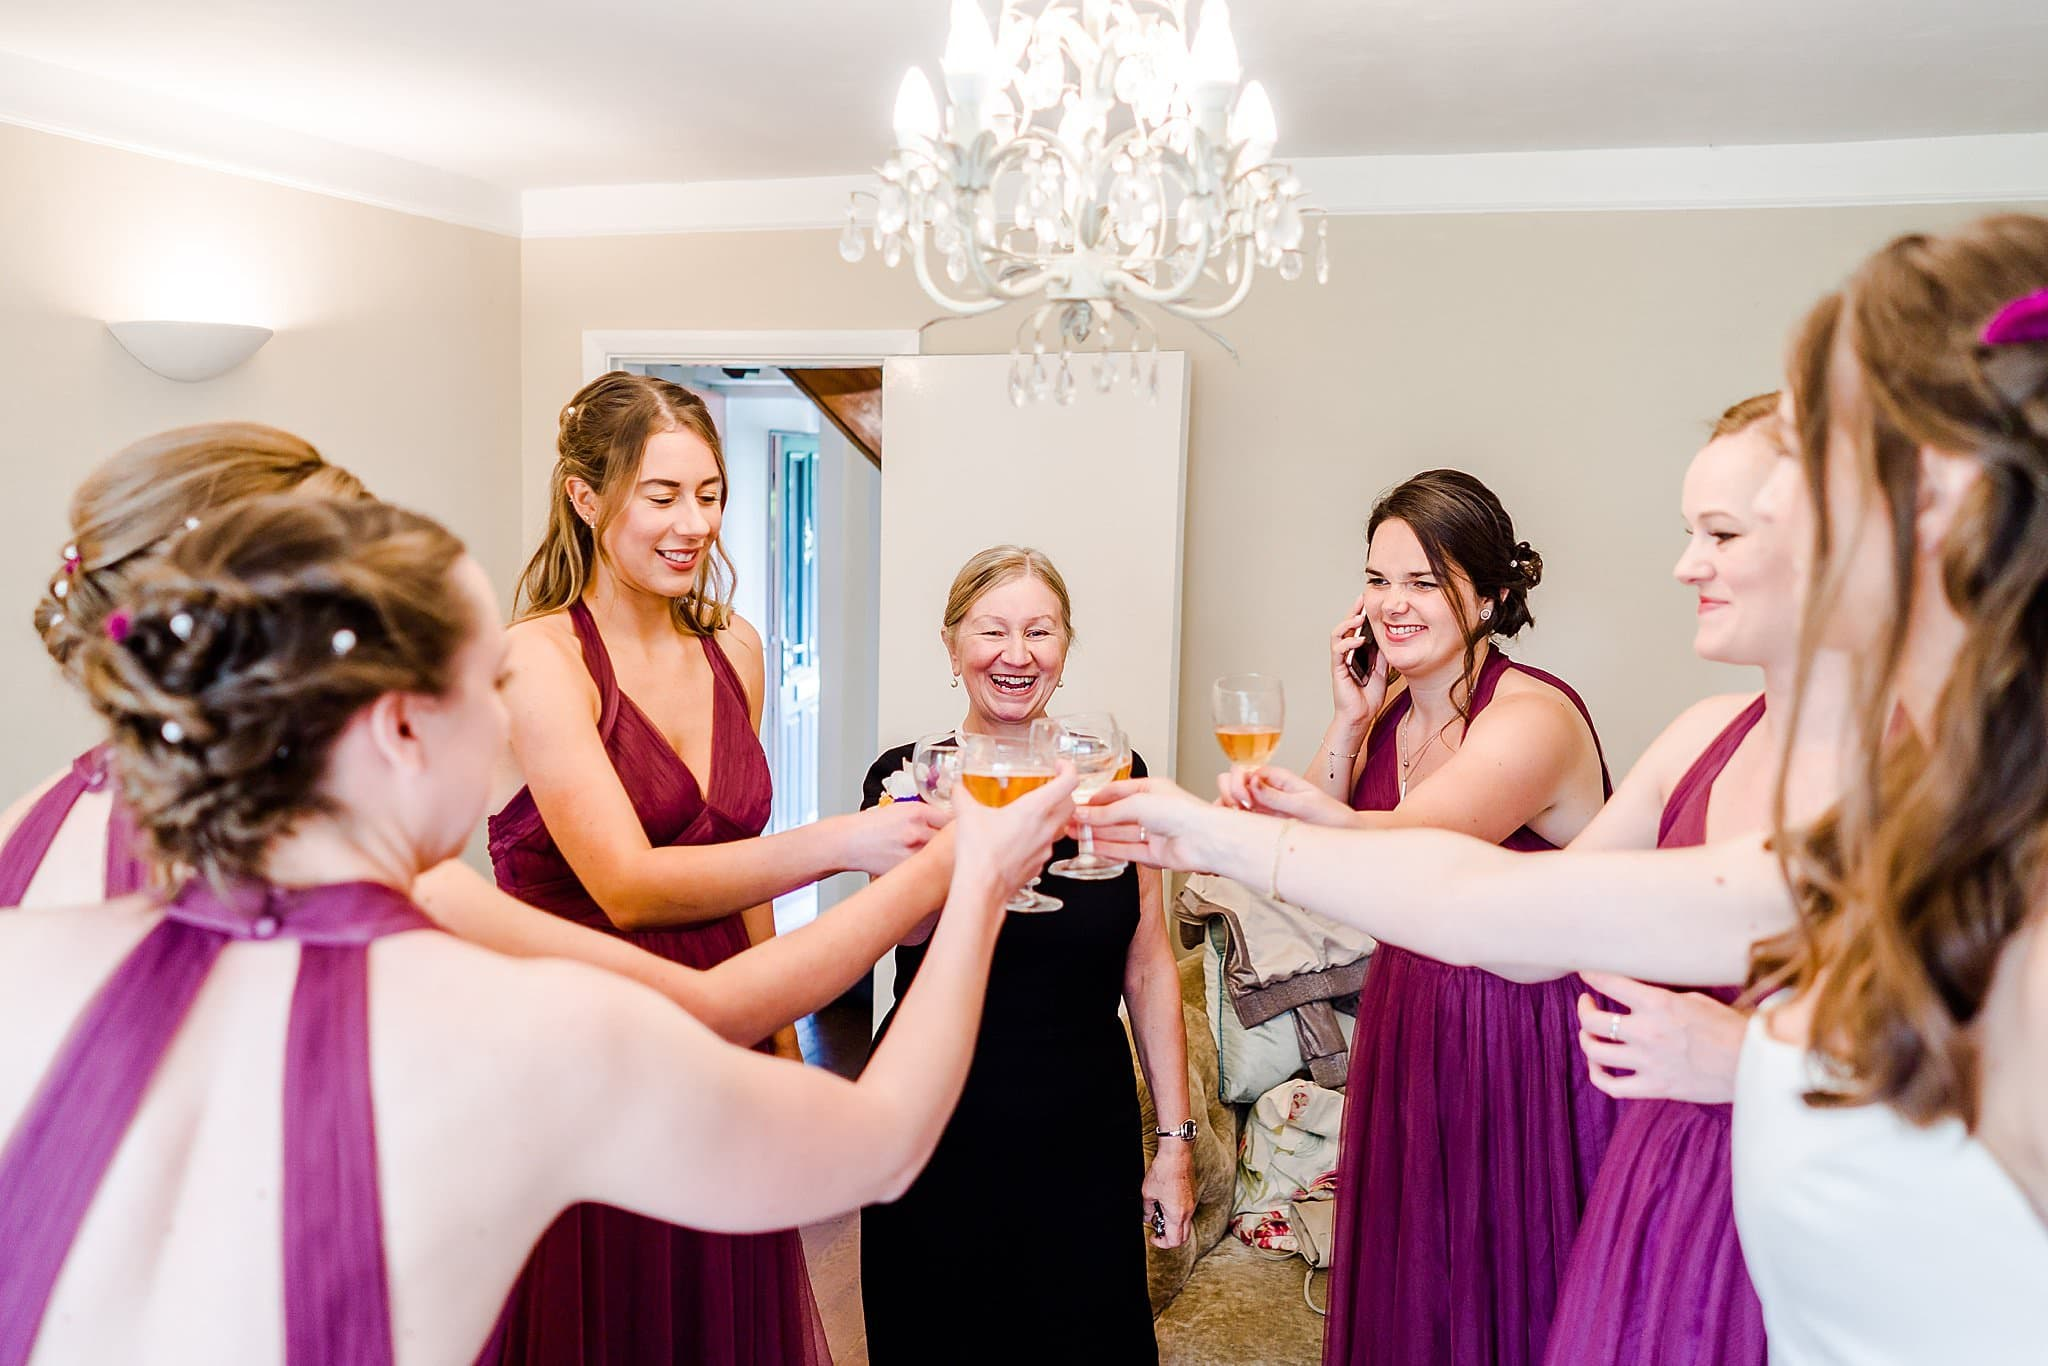 Bride, bridesmaids and bride's mother all clink glasses to toast the bride on her wedding day